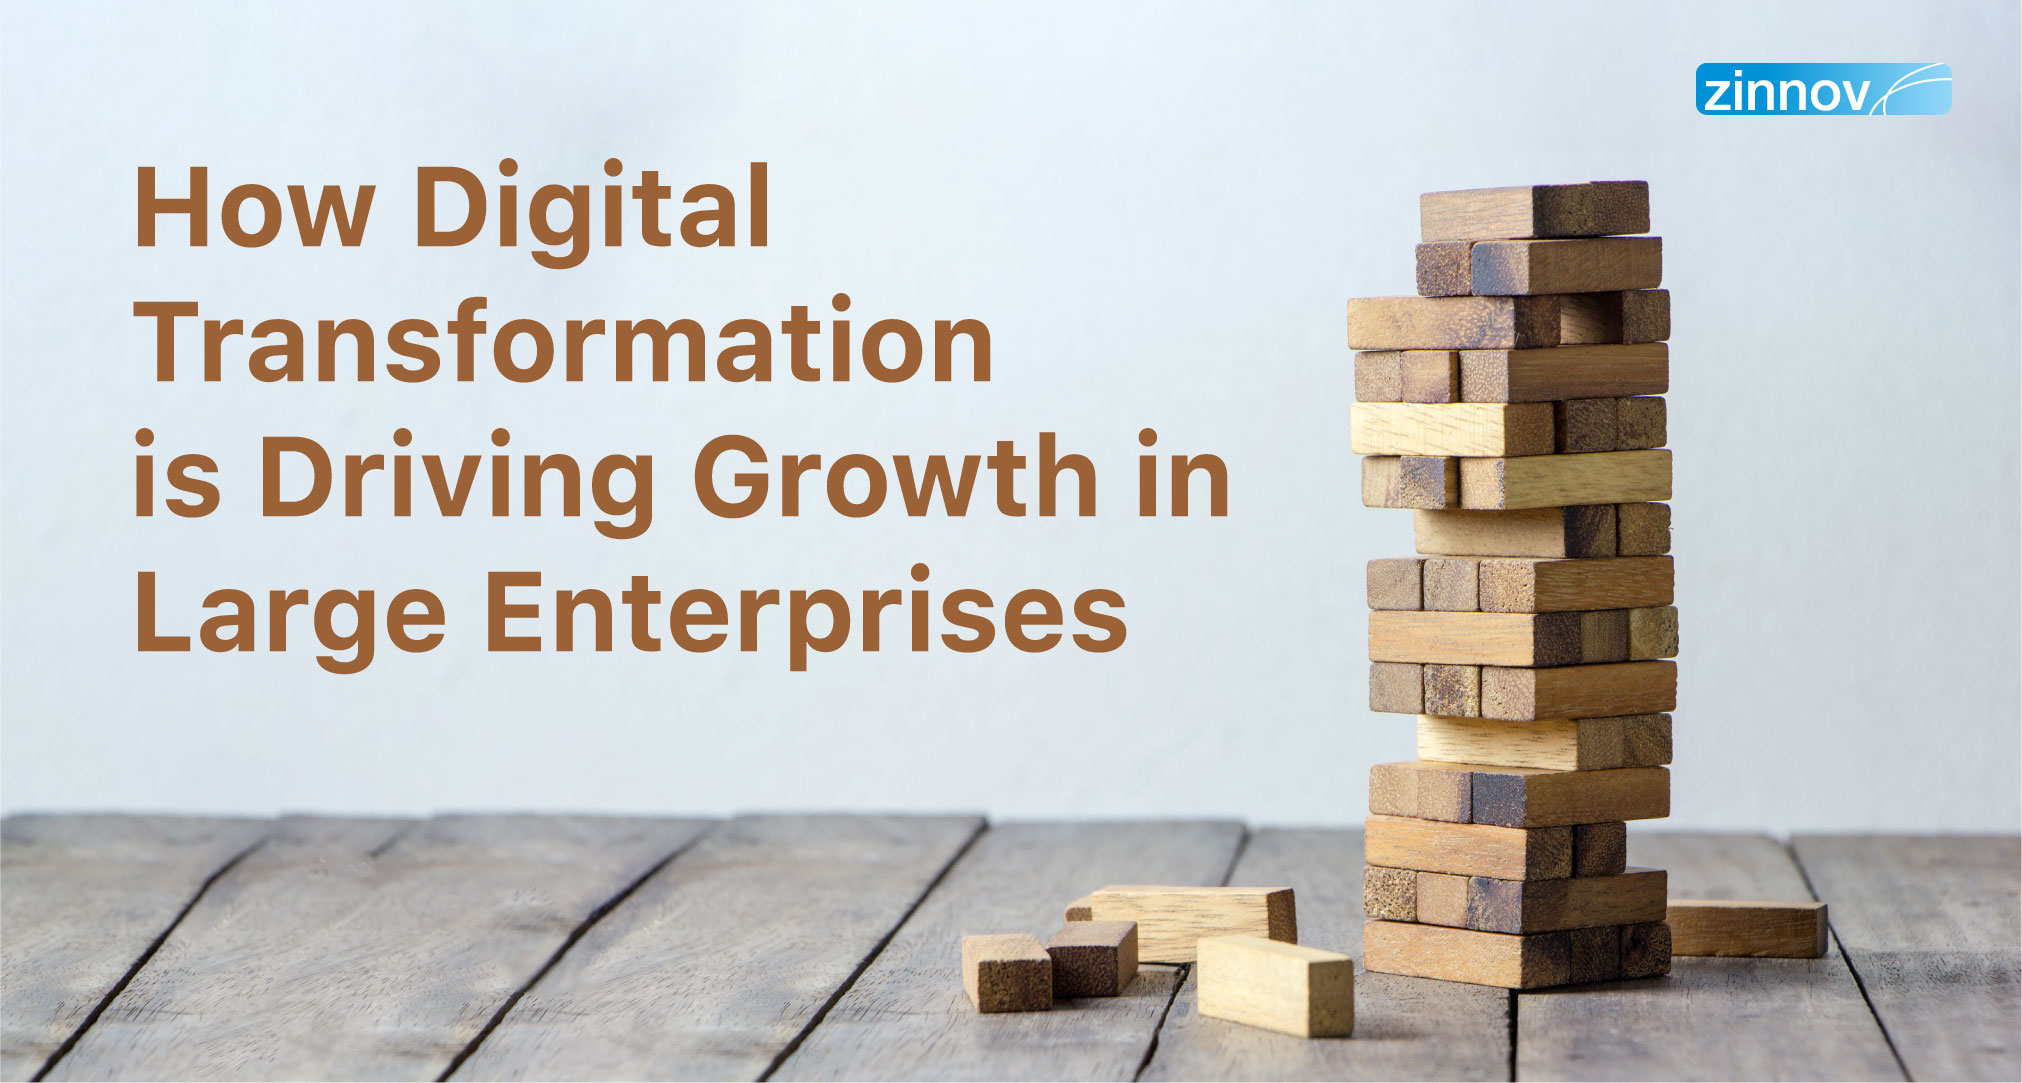 Why Large Enterprises In India Need Digital Transformation Consulting